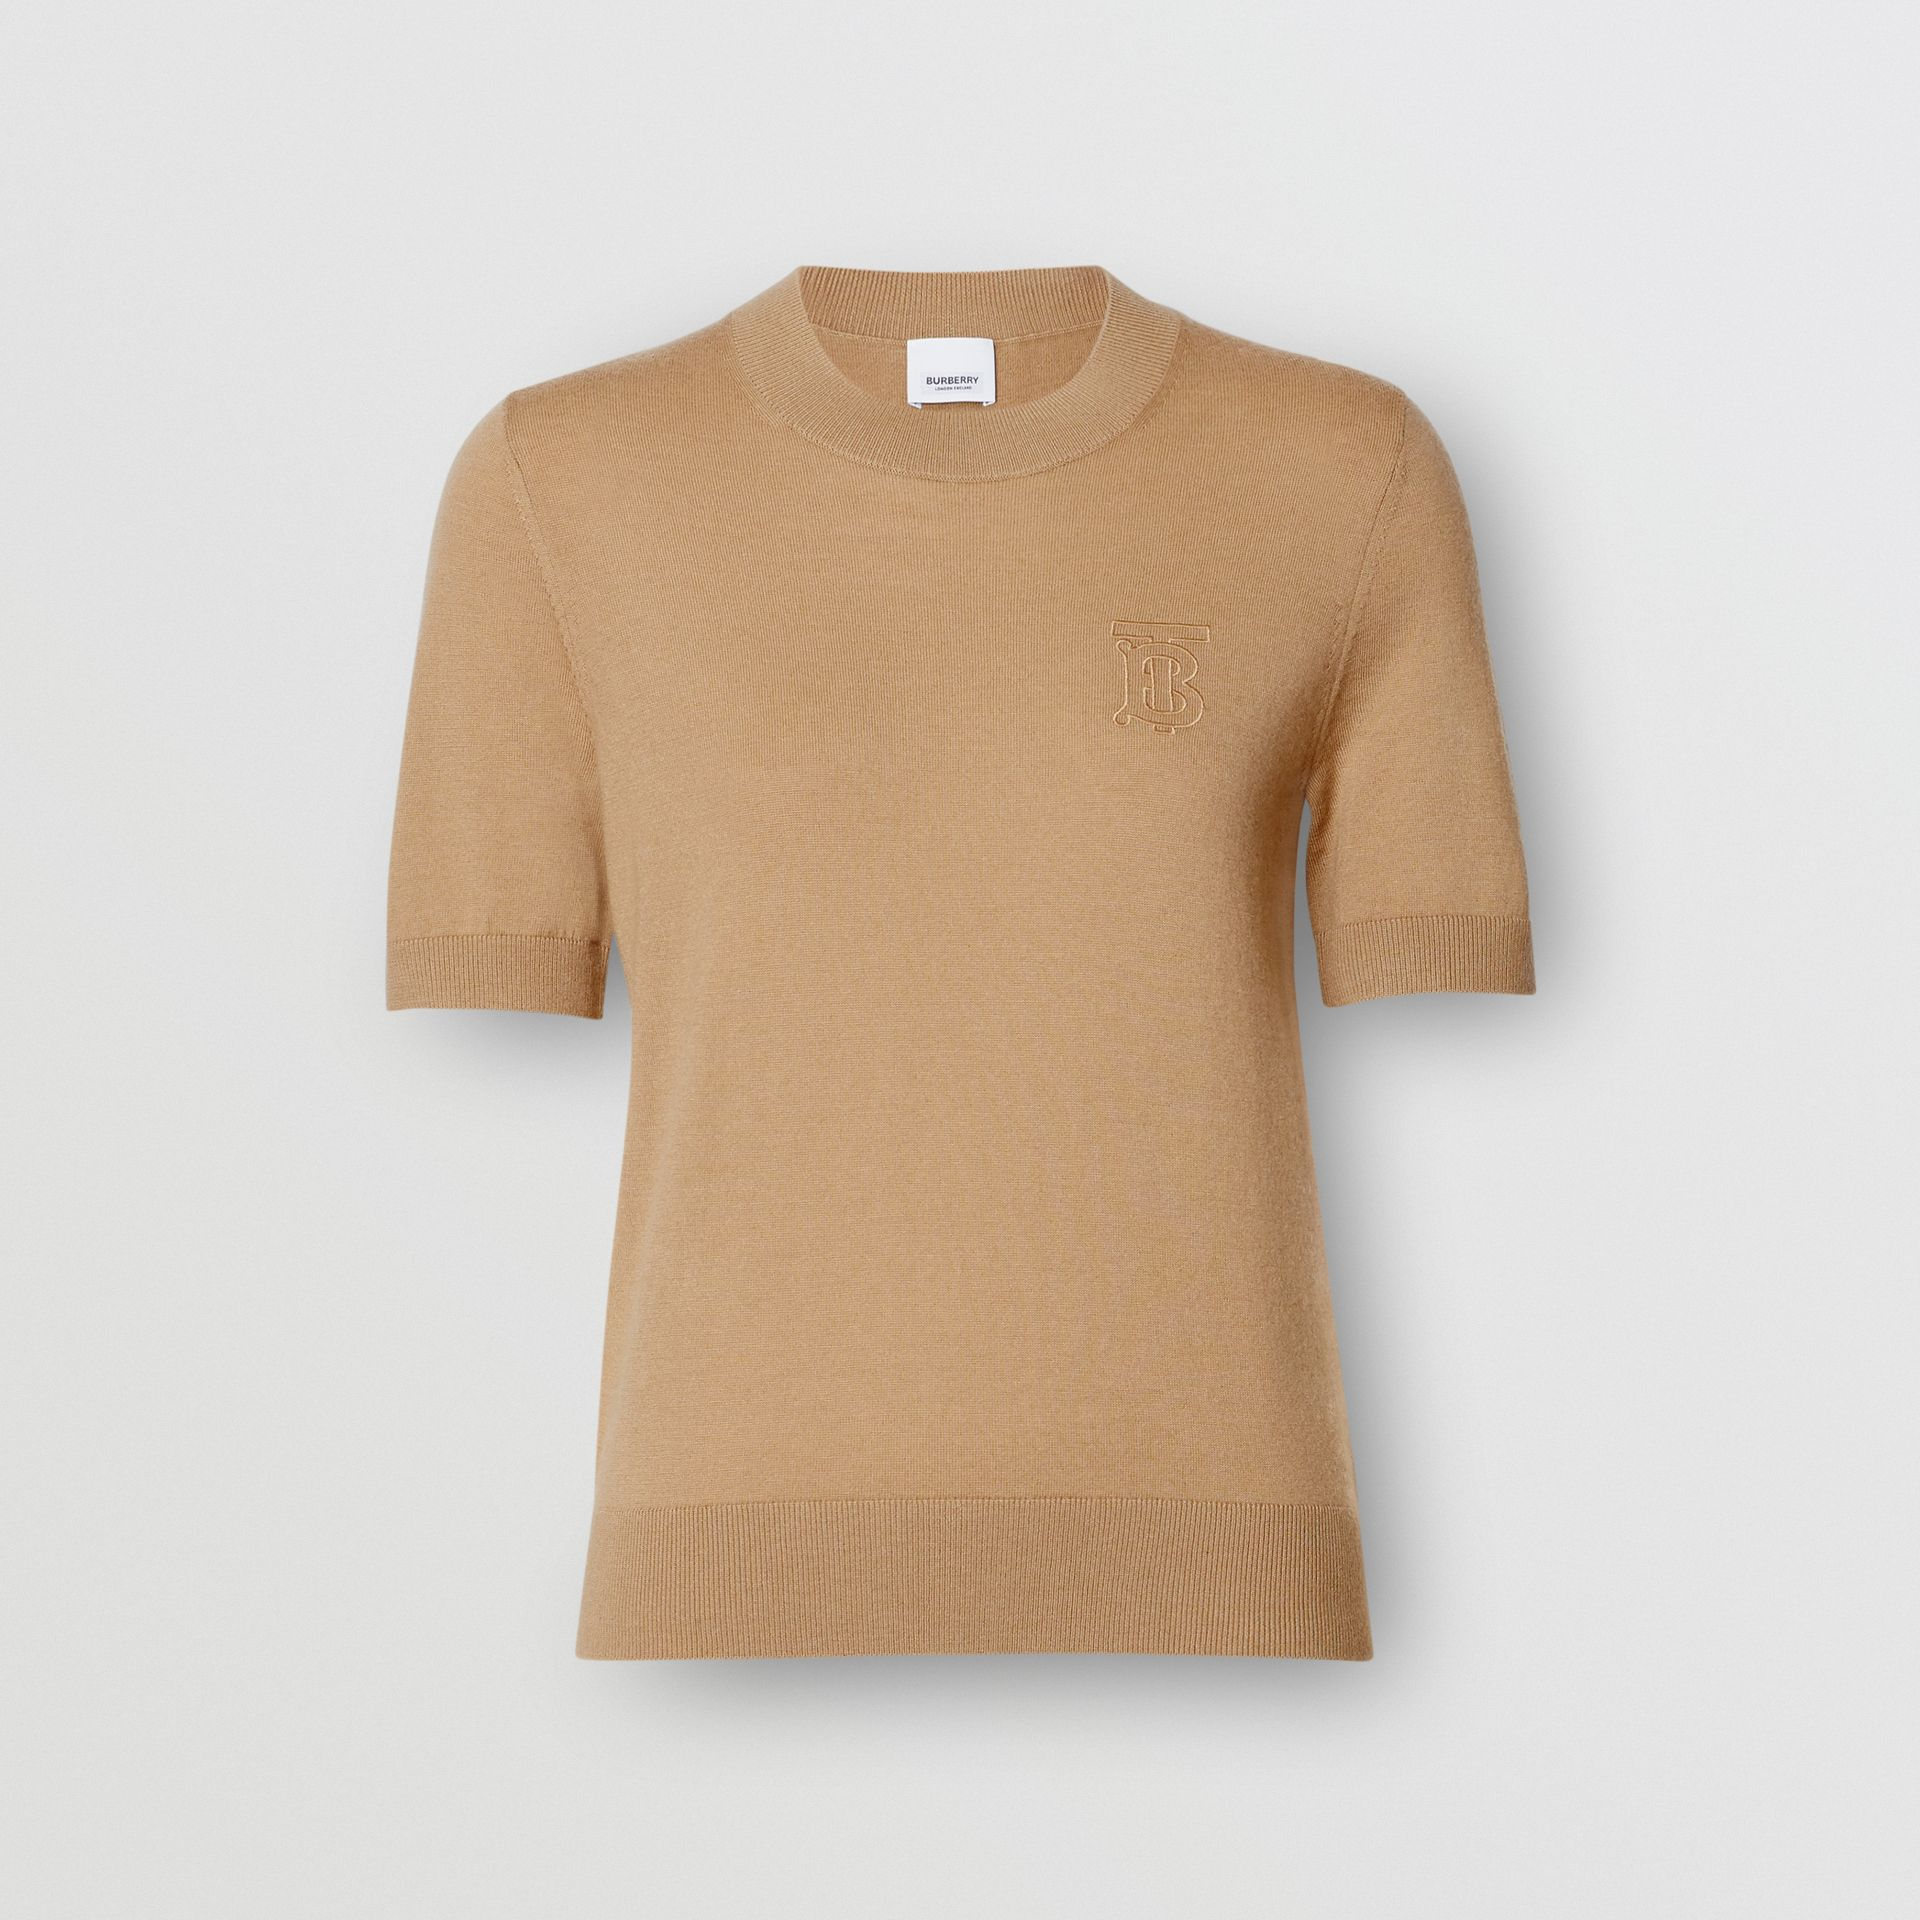 Monogram Motif Cashmere Top in Archive Beige - Women | Burberry Australia - gallery image 3